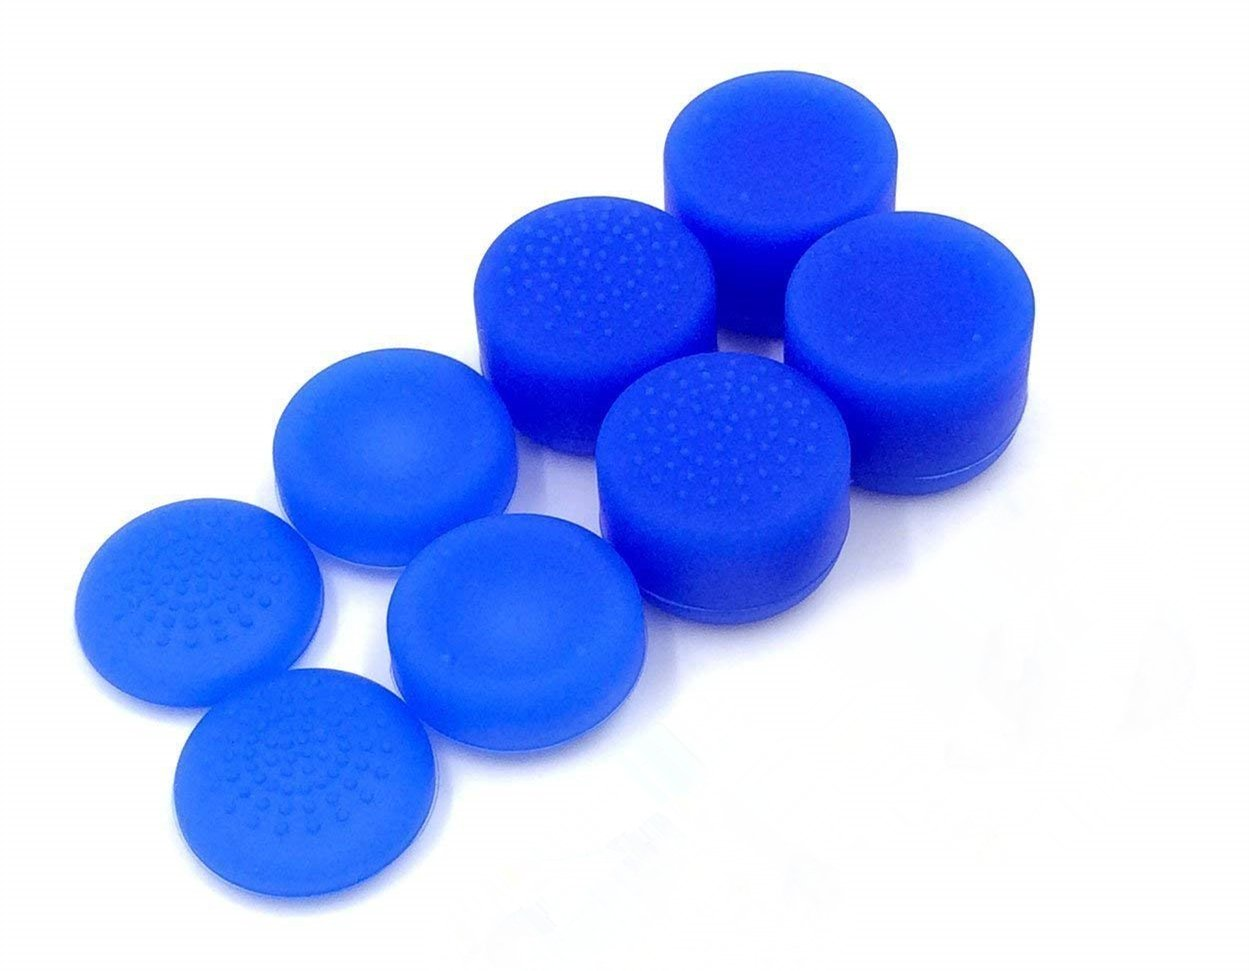 OBUY Professional Thumb Grips Thumbstick Joystick Cap Cover (blue) Extra High 8 Units Pack for PS4, Switch PRO, PS3, Xbox 360, Wii U tablet, PS2 controller